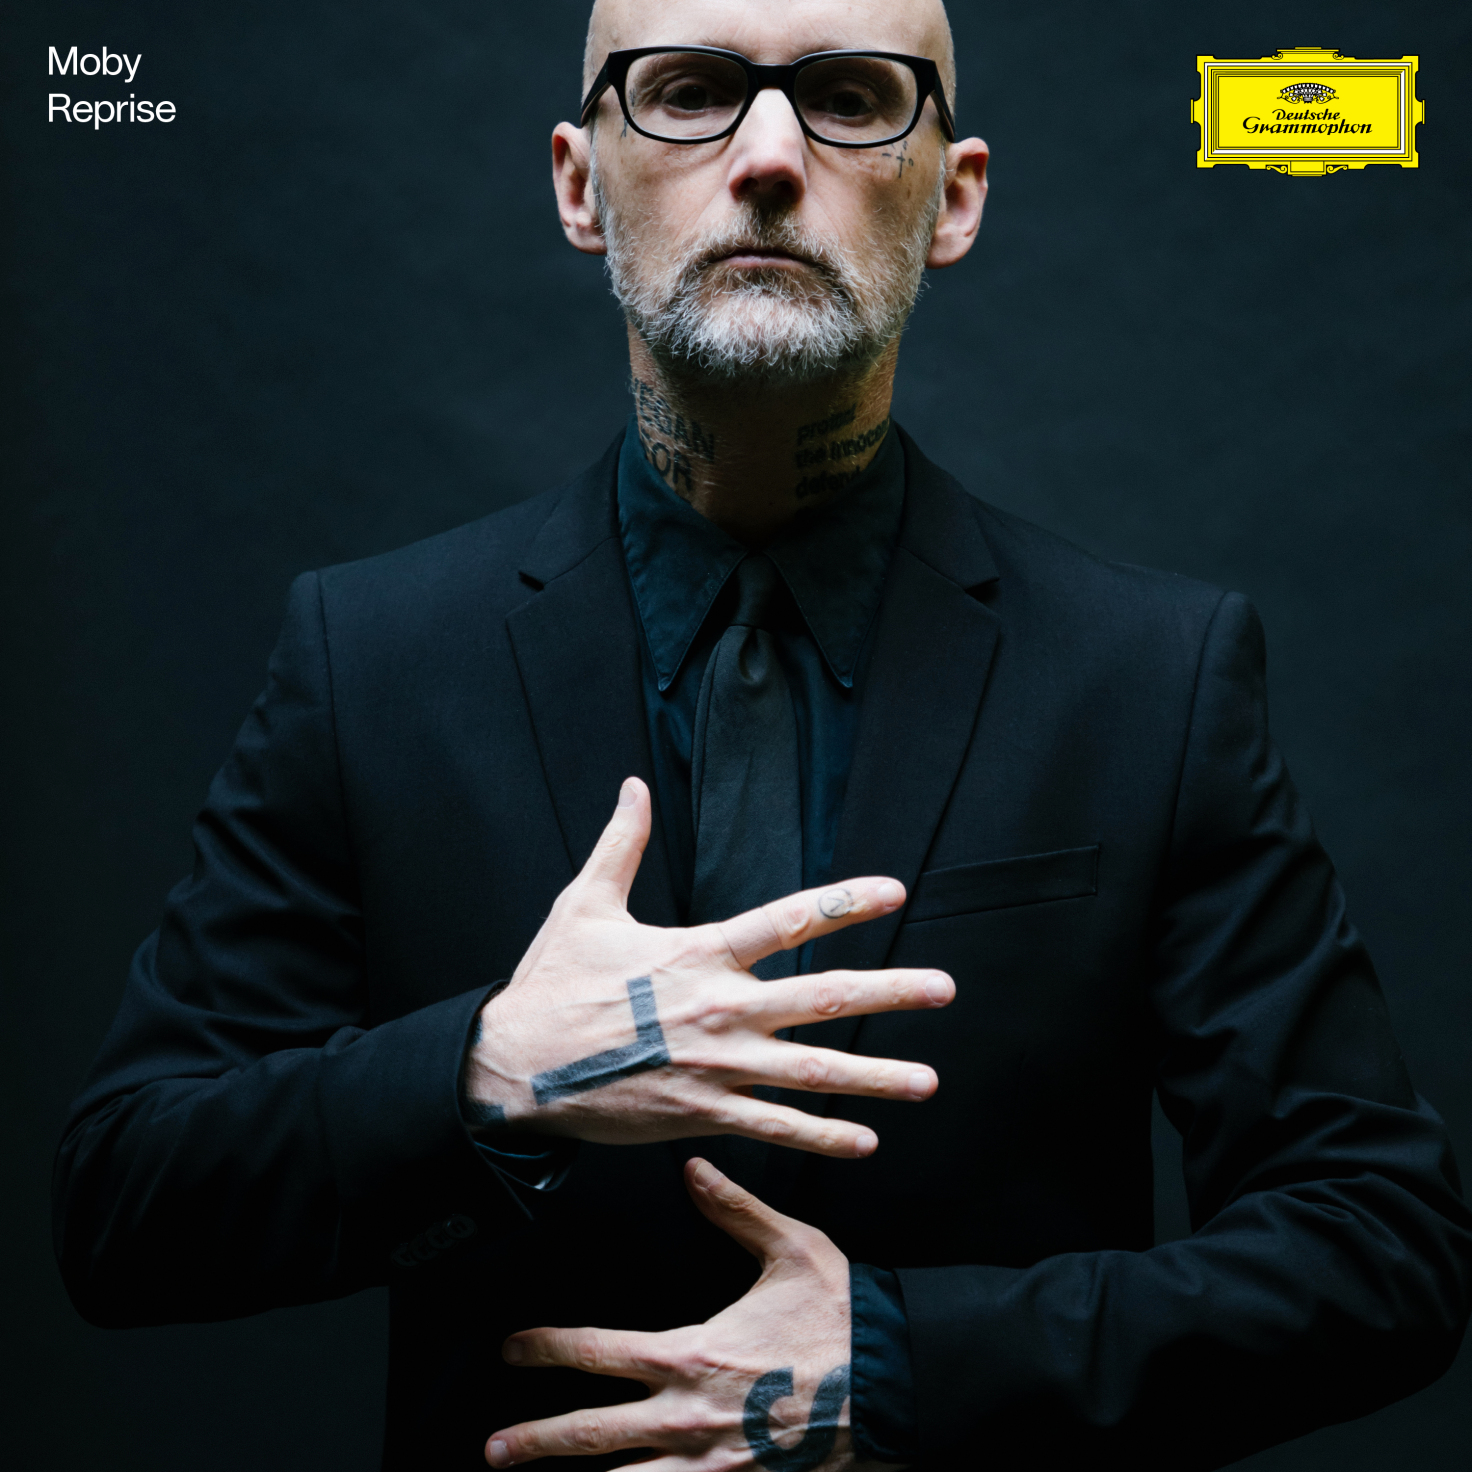 moby reprise 2021